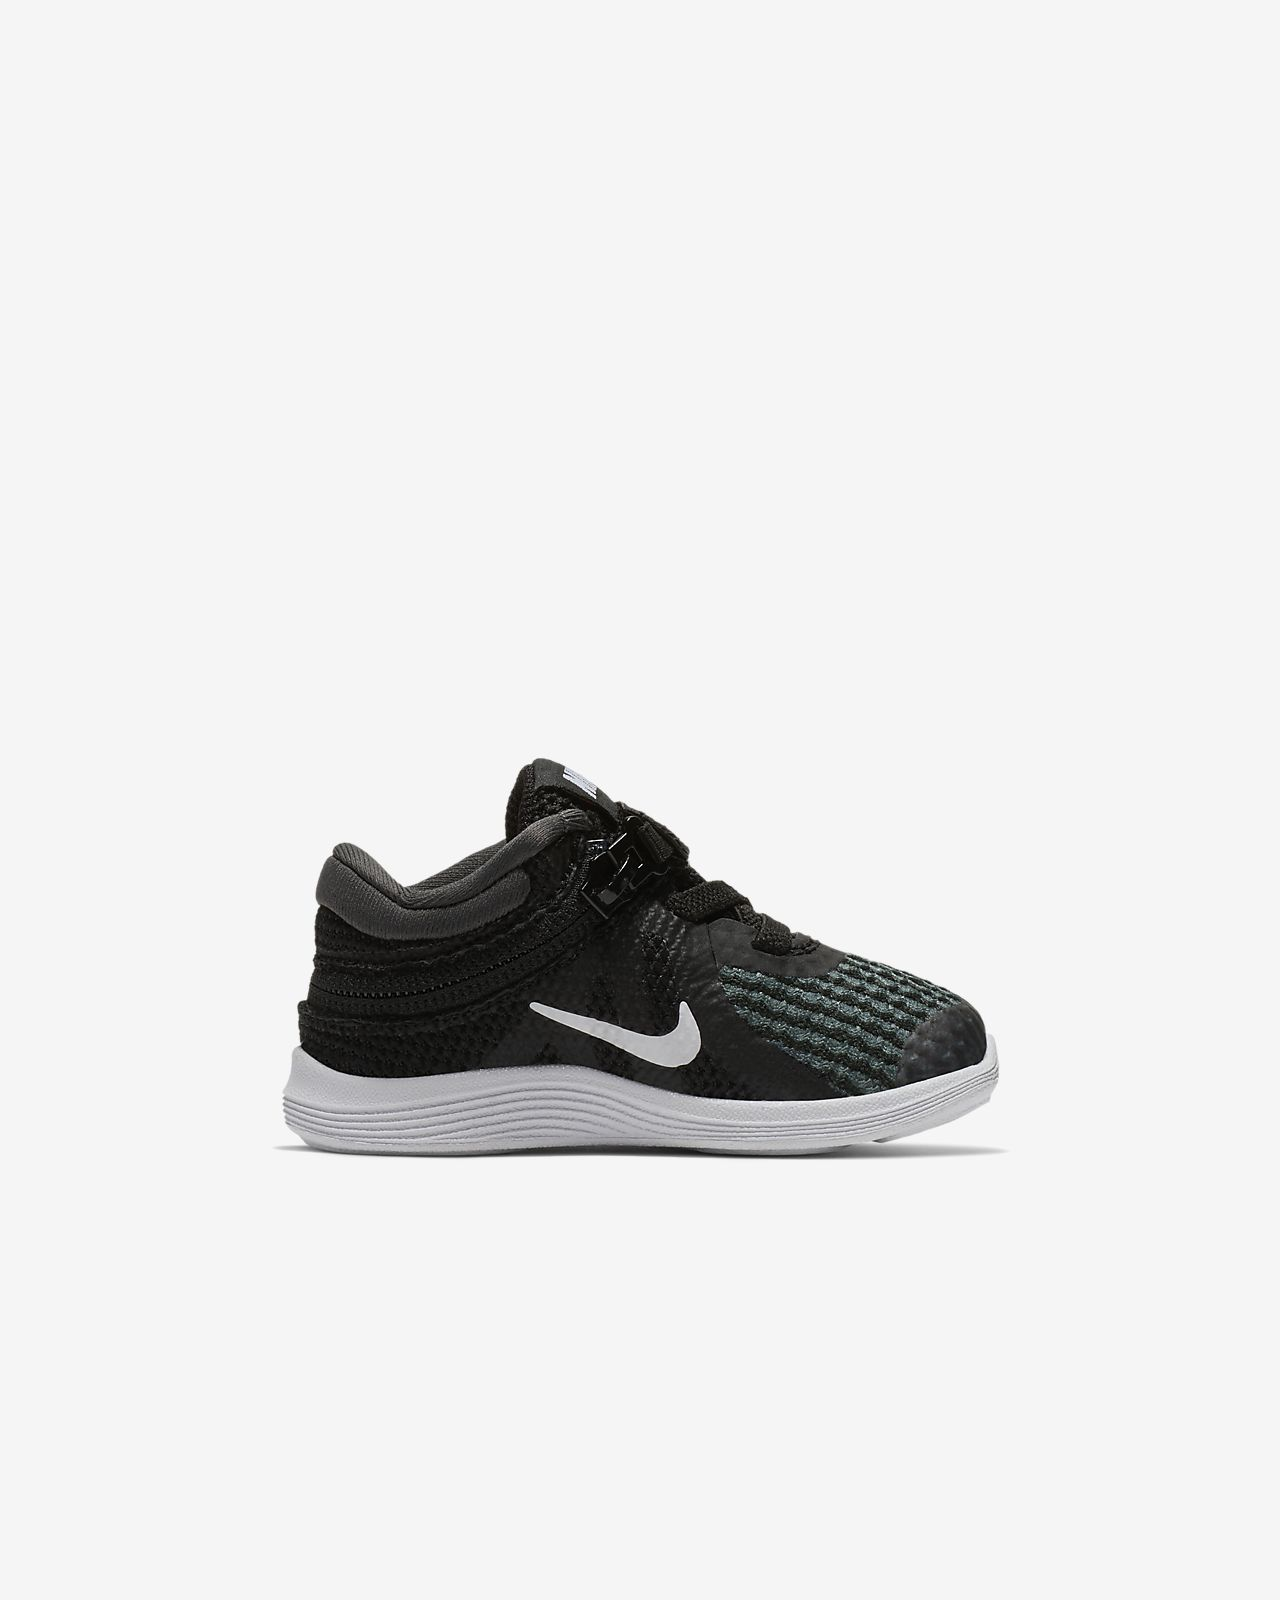 98761838f173b Nike Revolution 4 FlyEase Baby and Toddler Shoe. Nike.com GB